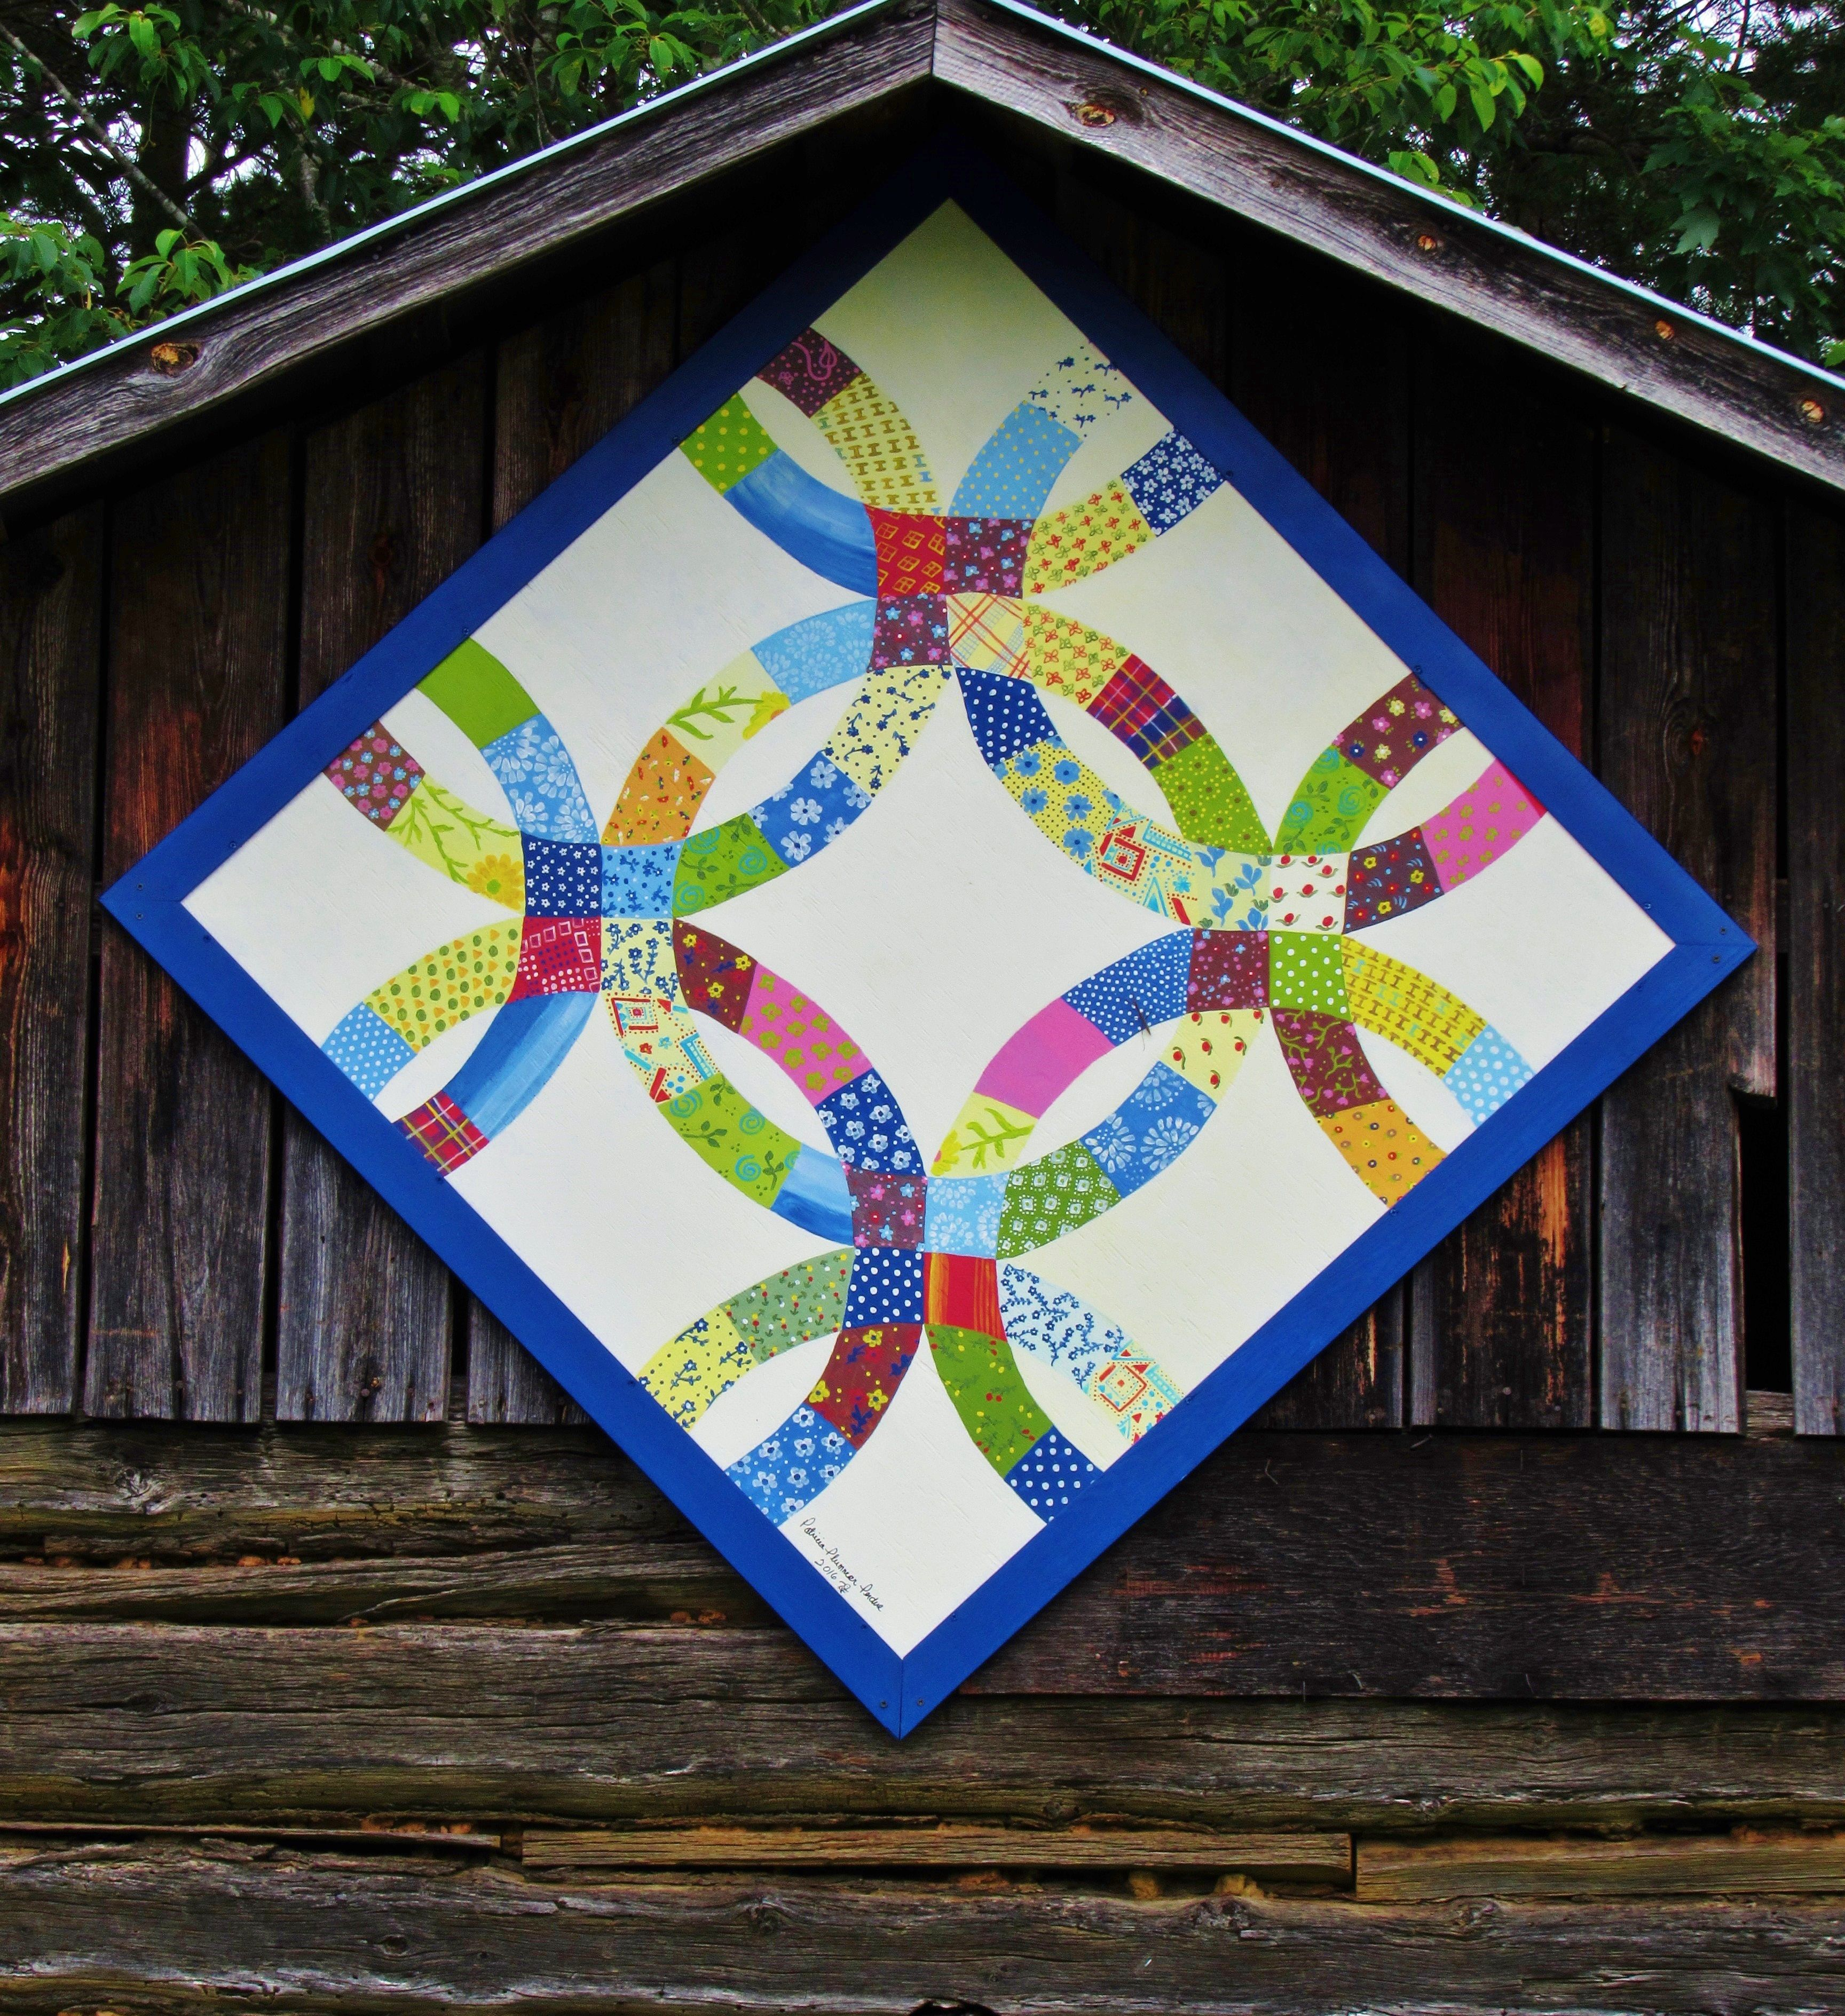 2016 Barn Quilt block for Barn Quilt Trail Rockingham County NC